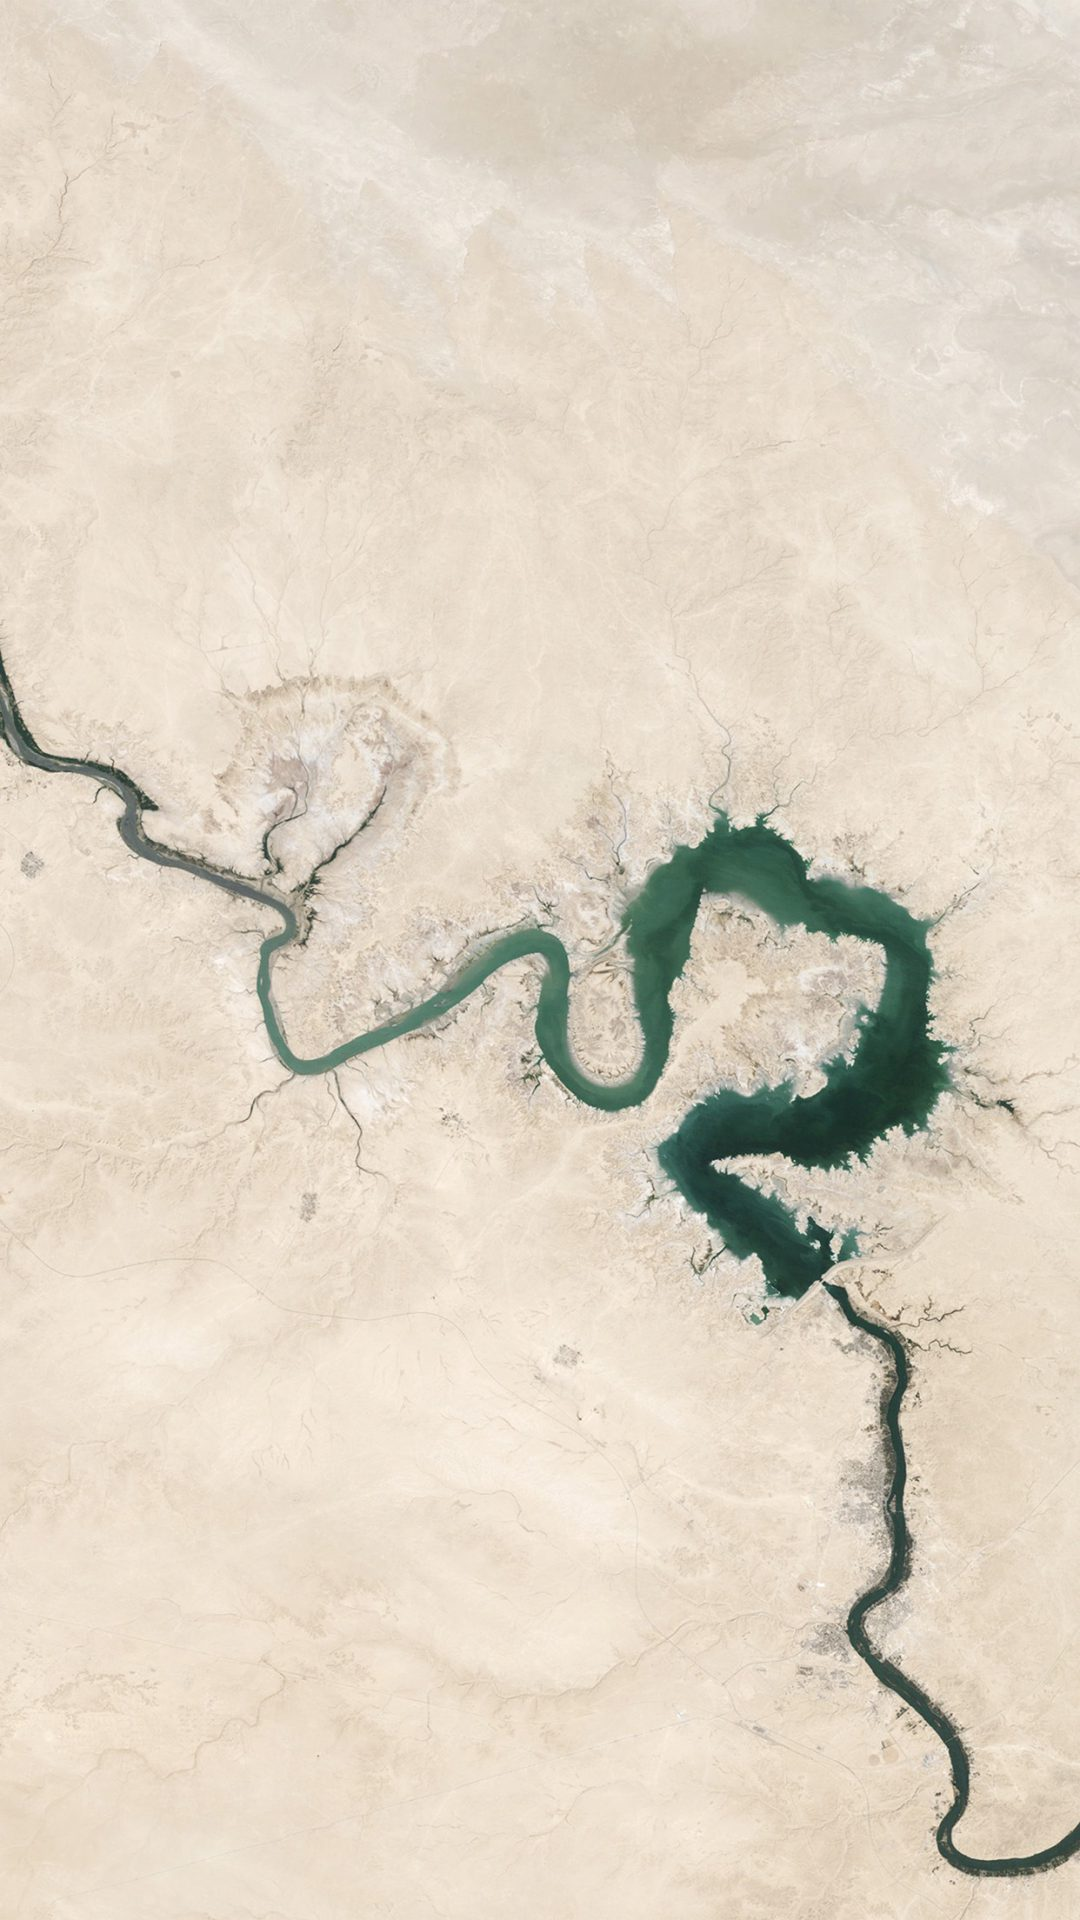 Earthview Space Land River Green